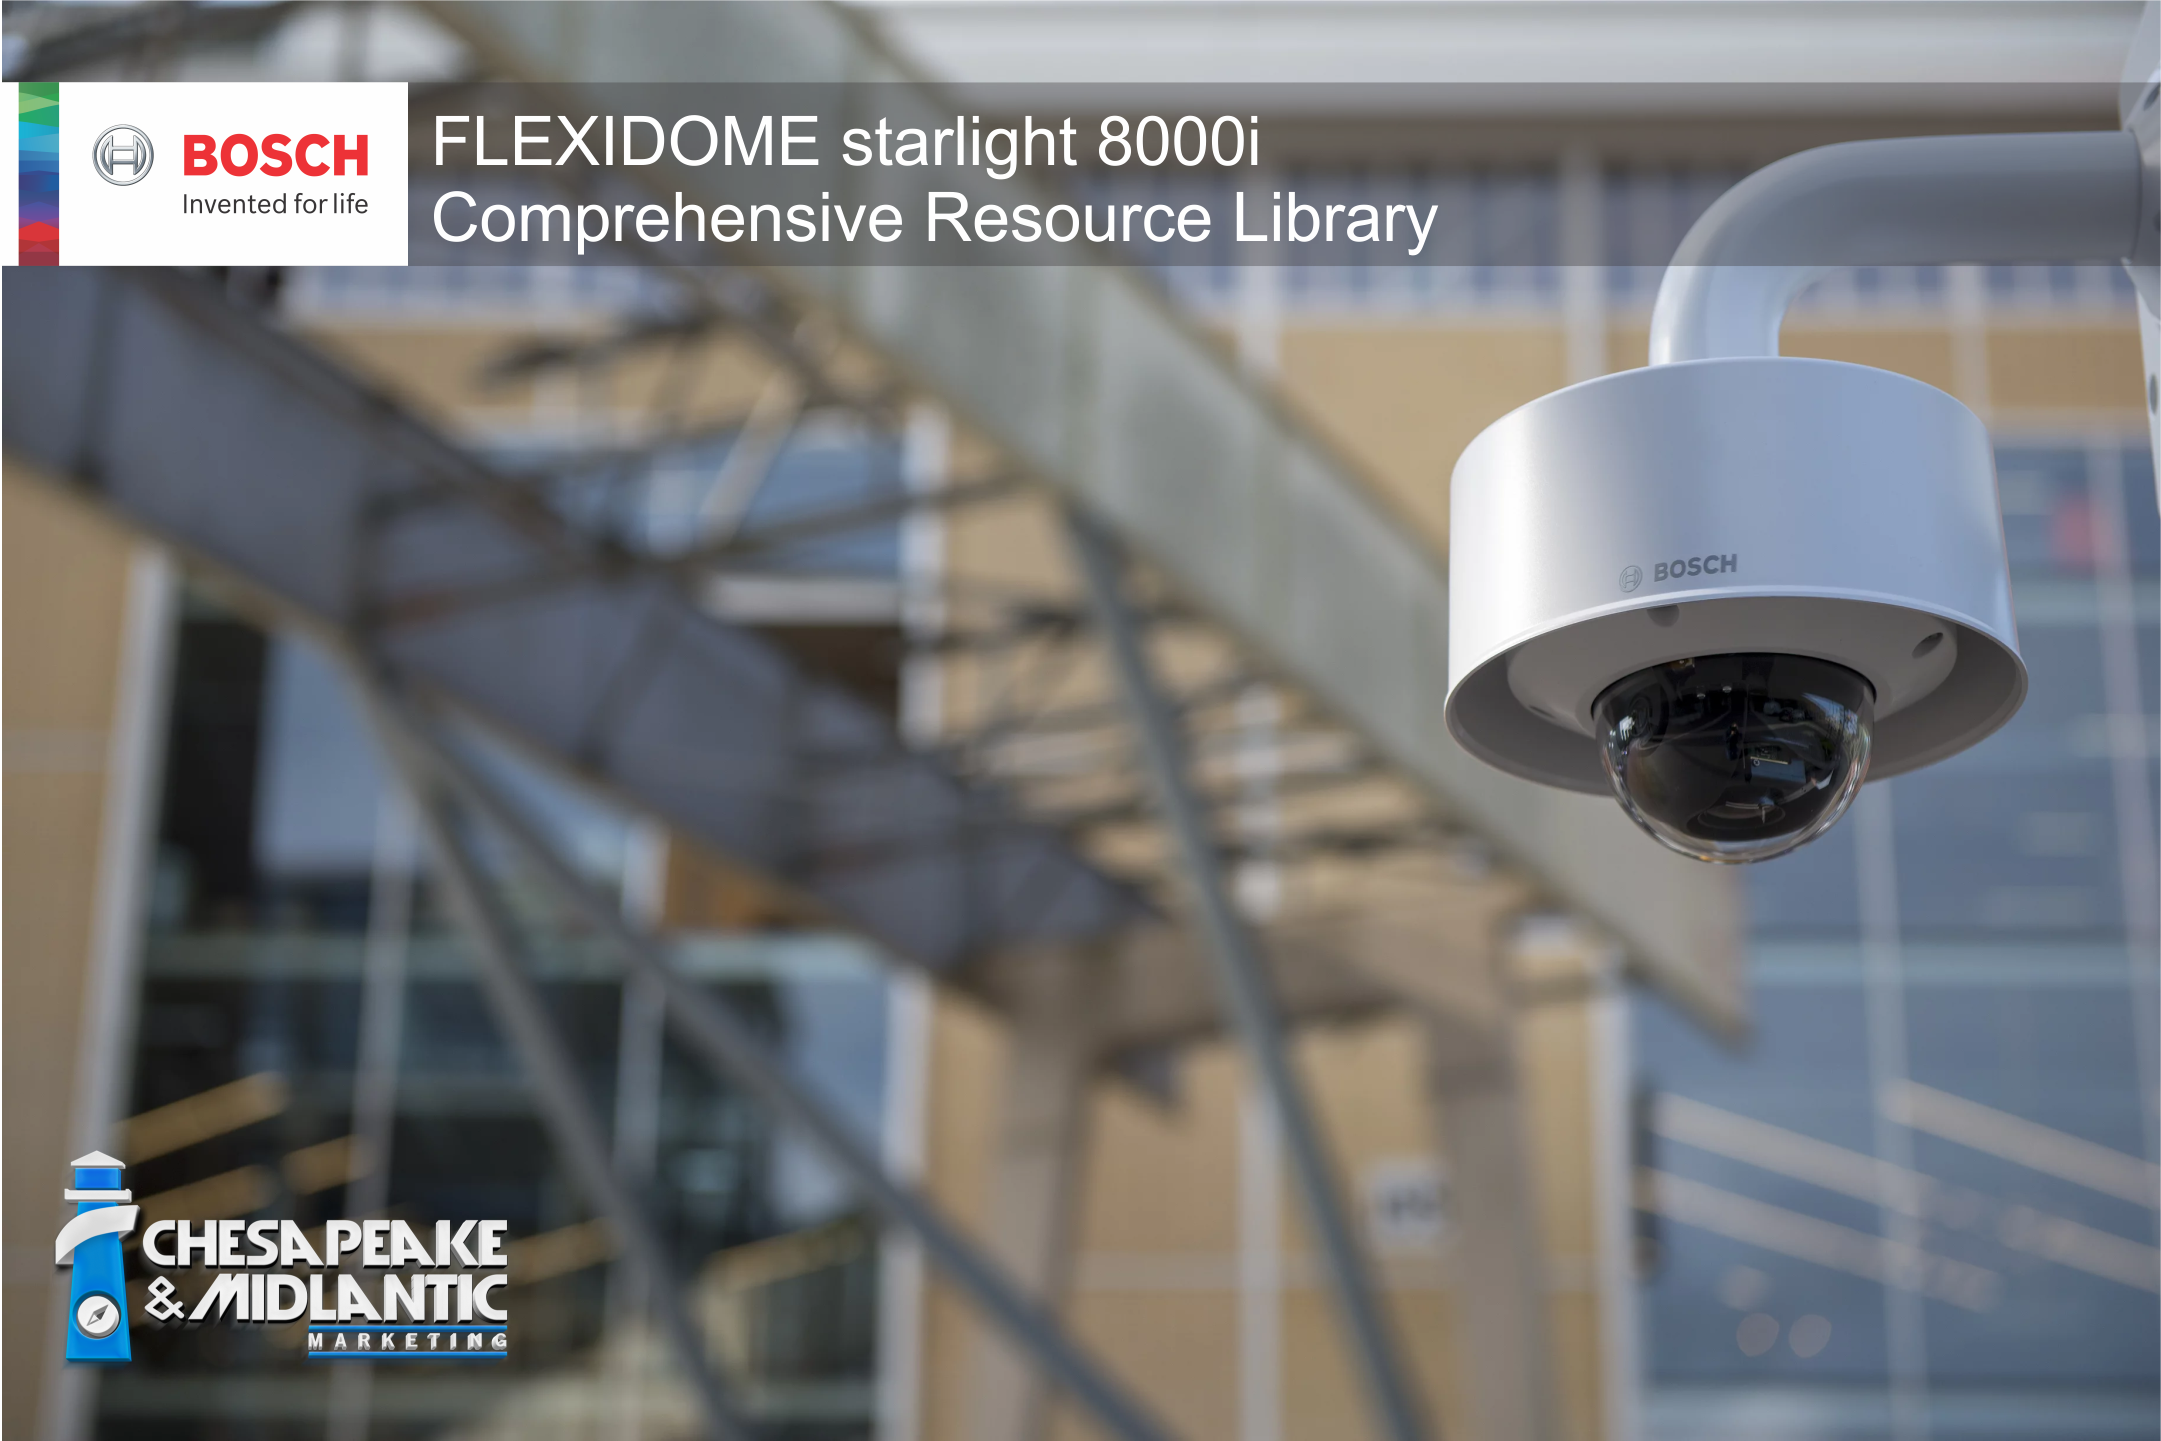 FLEXIDOME starlight 8000i comprehensive resources image